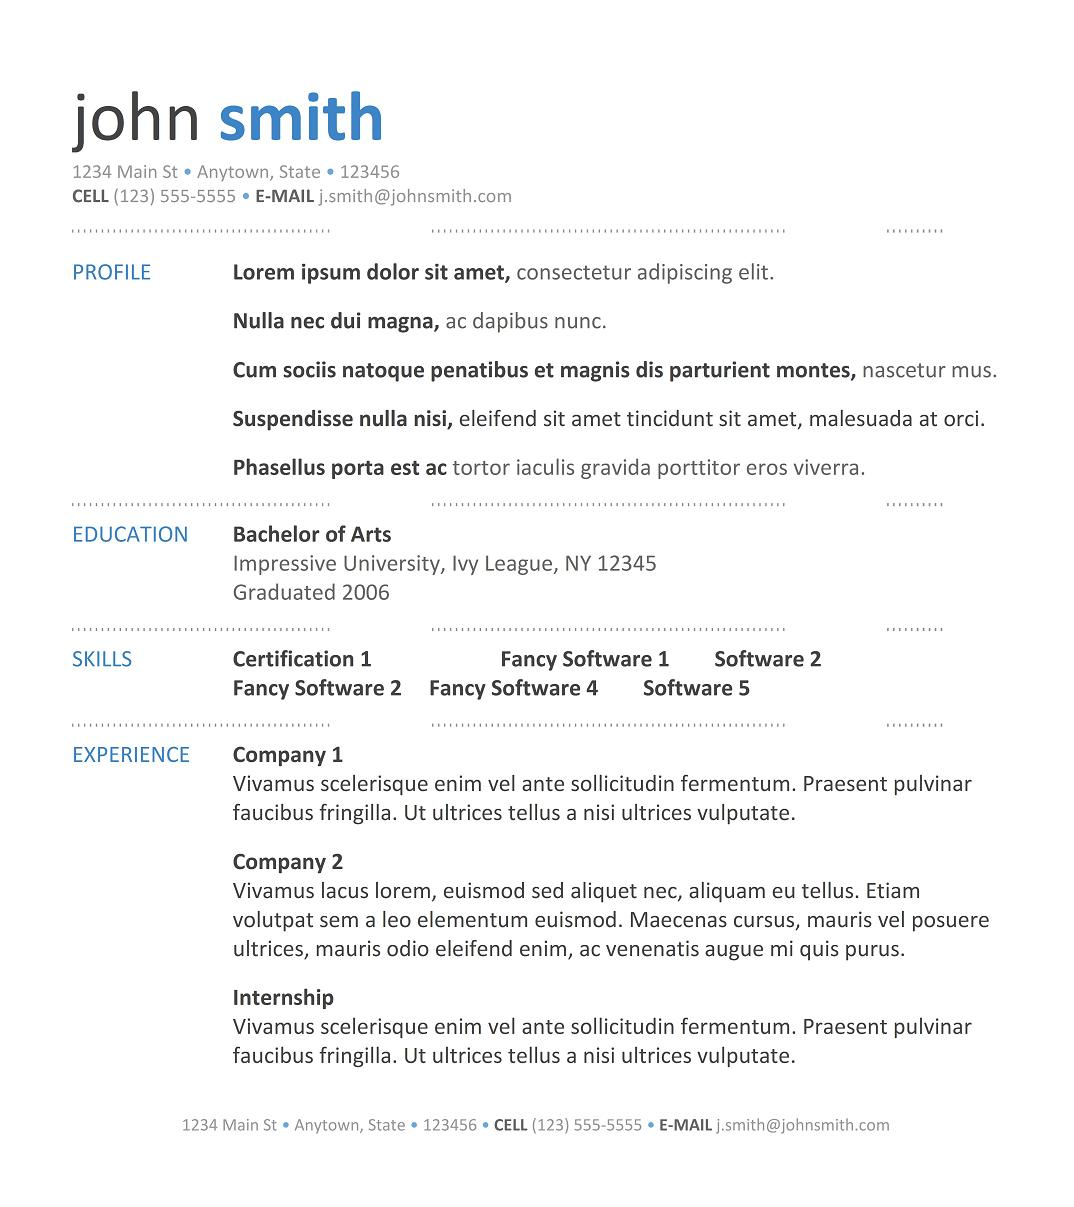 professional resume template for freshers - Free Resume Templates Word Document